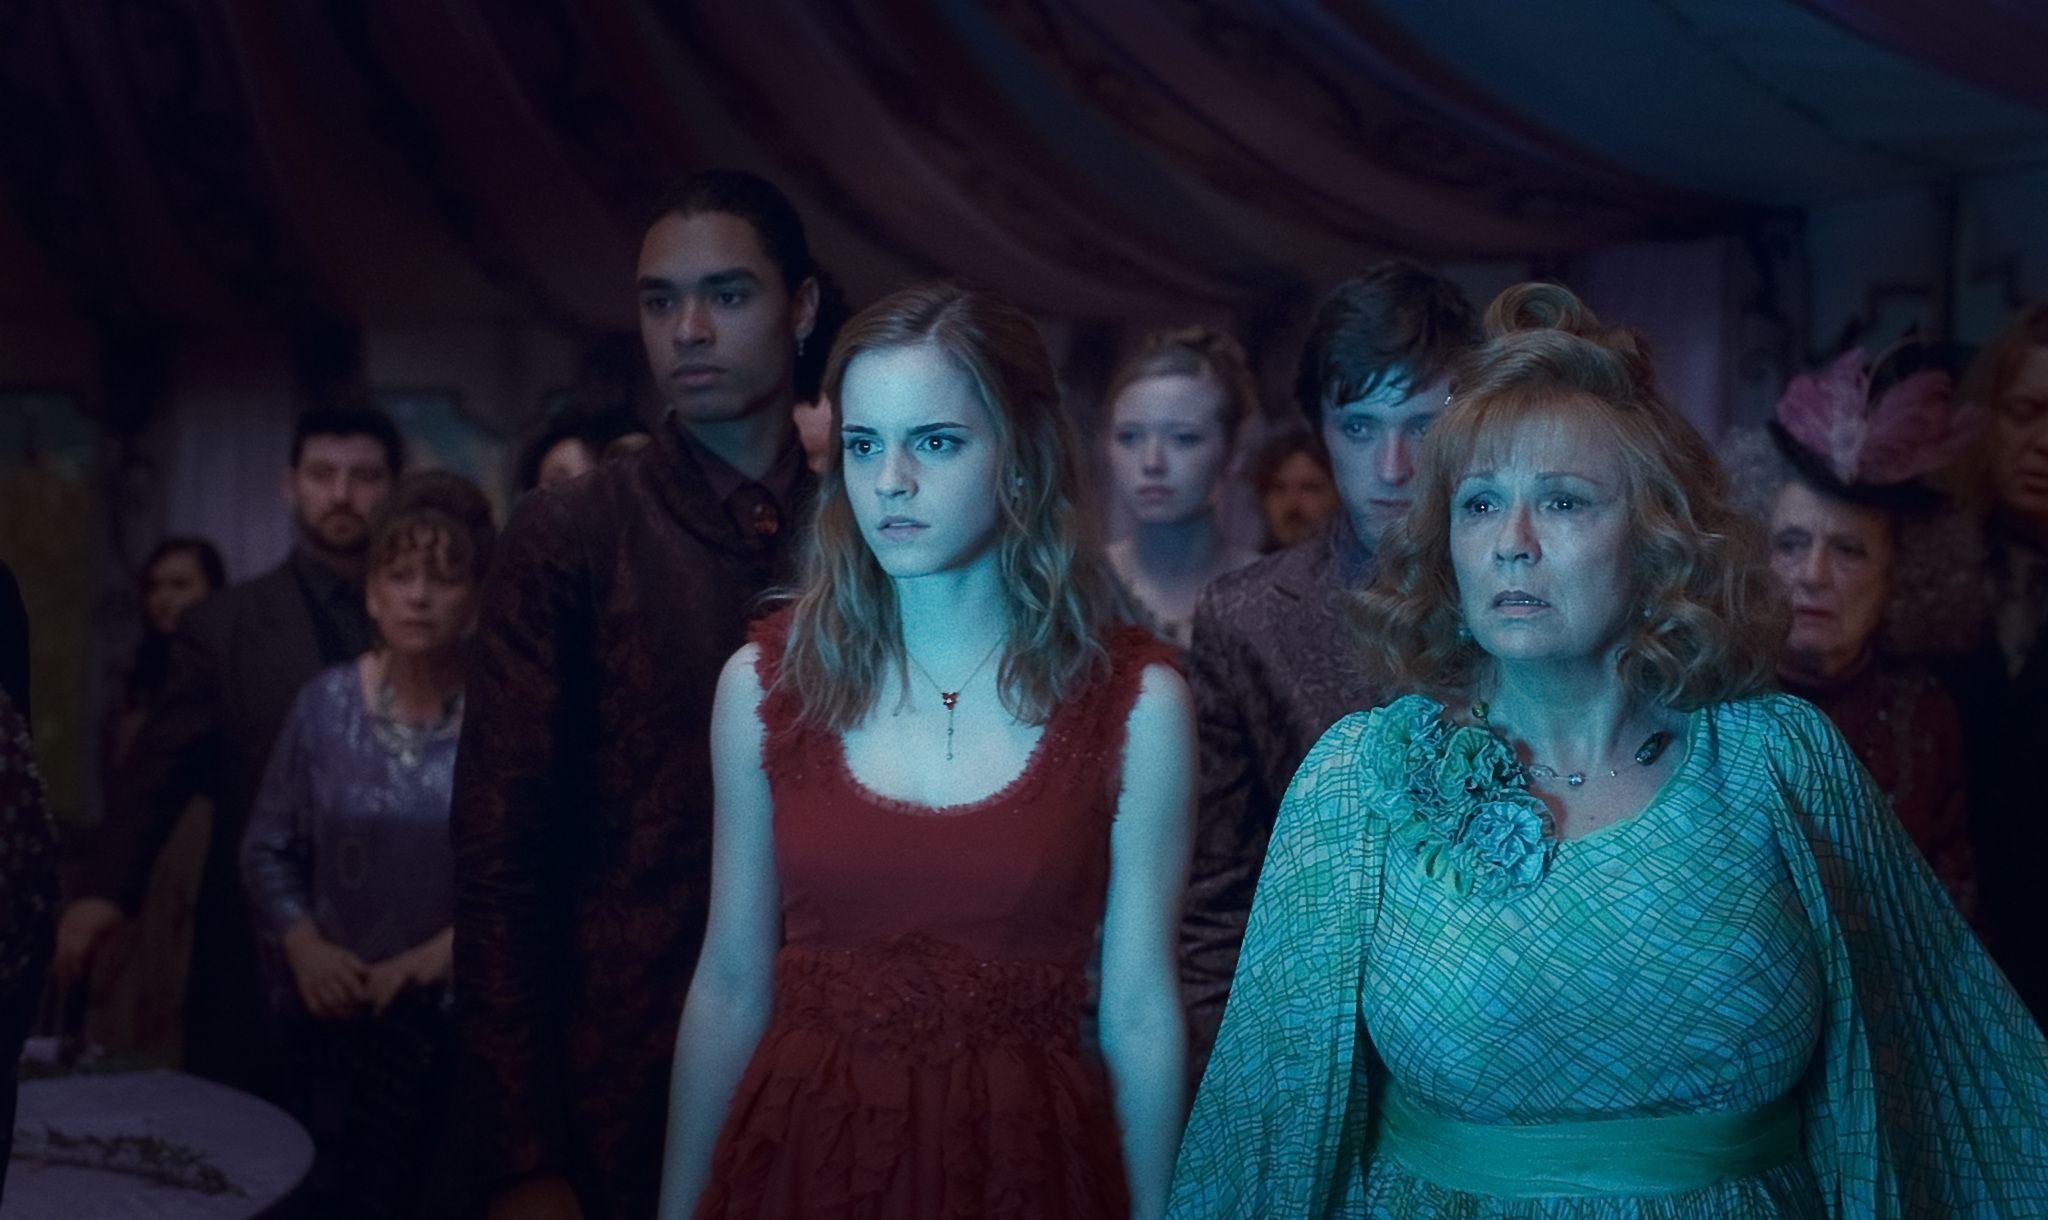 harry_potter_and_the_deathly_hallows_movie_image_emma_watson_01  sc 1 st  Collider & Set Visit HARRY POTTER AND THE DEATHLY HALLOWS | Collider